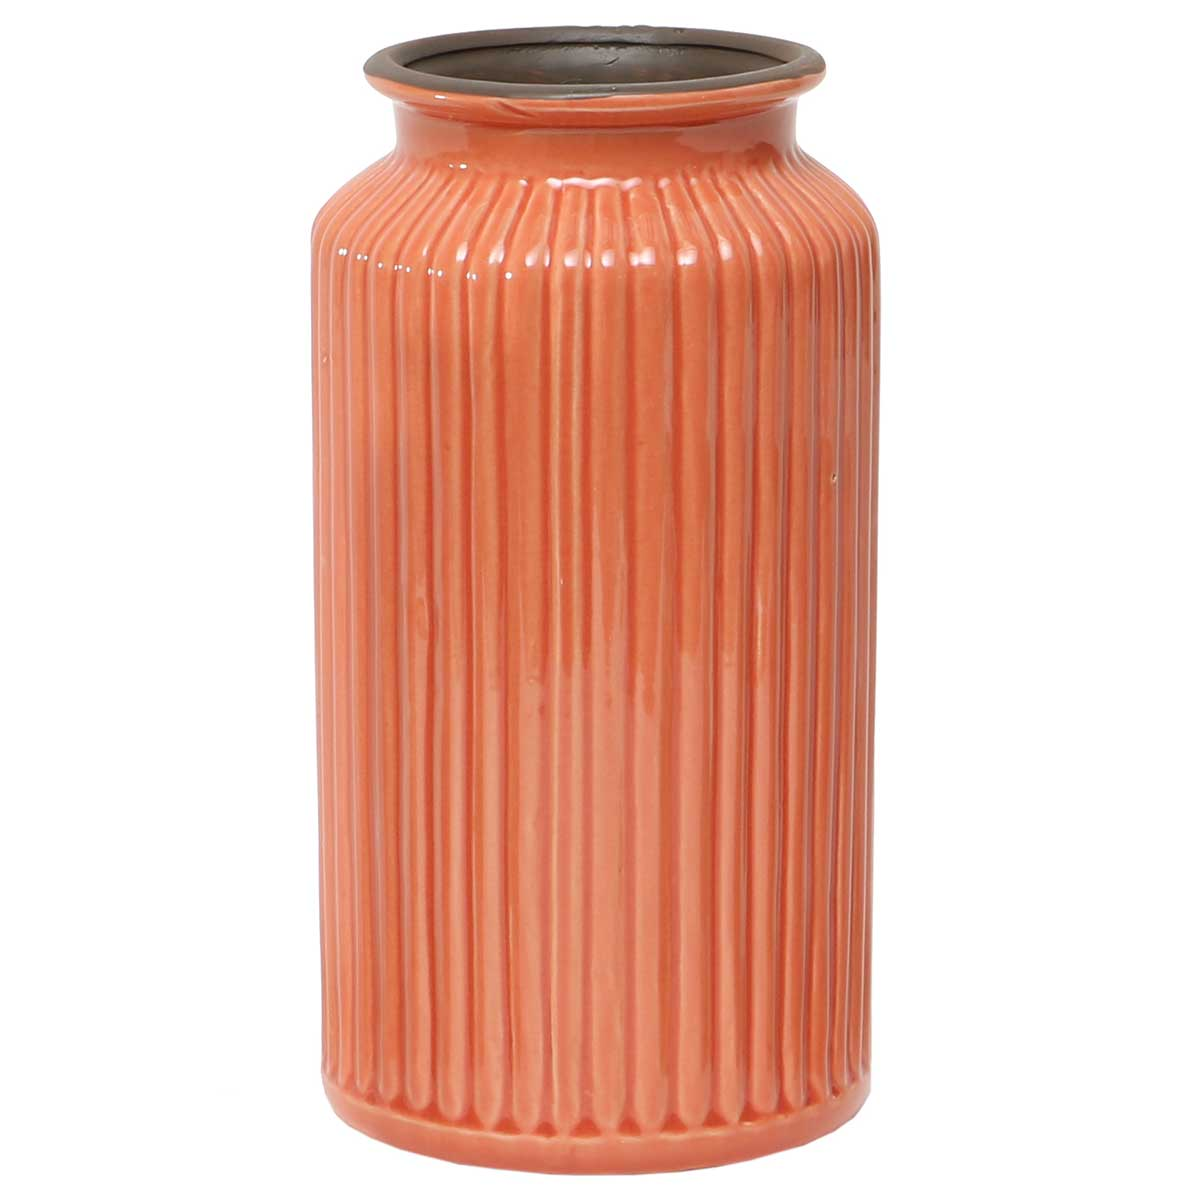 "Peach Ribbed Vase 4.5""x10"" A2087 PE v22"